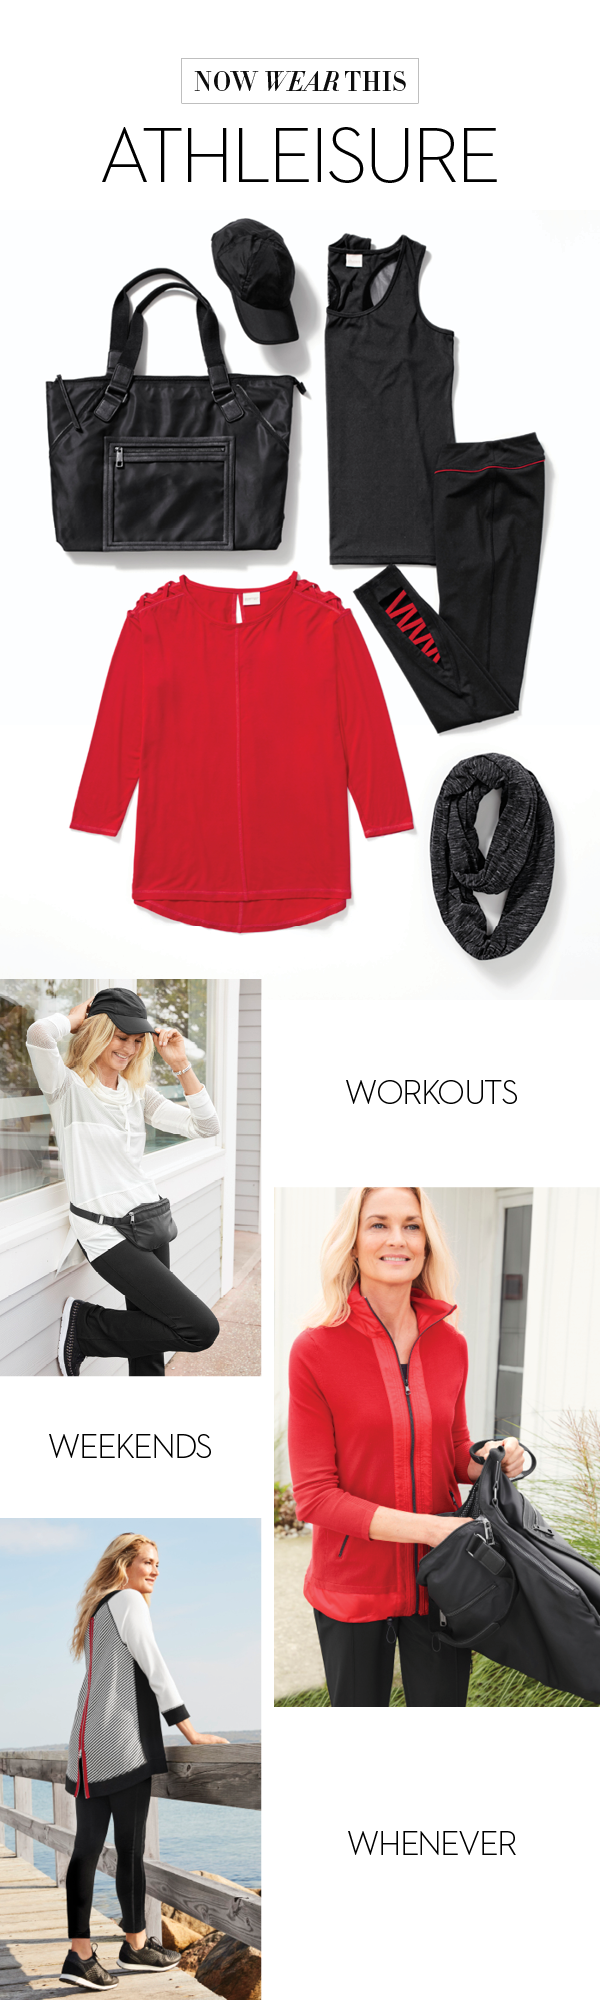 We are loving the athleisure trend right now and fully on board. Grab your comfortable-yet-chic leggings and tunics for a go-anywhere look.